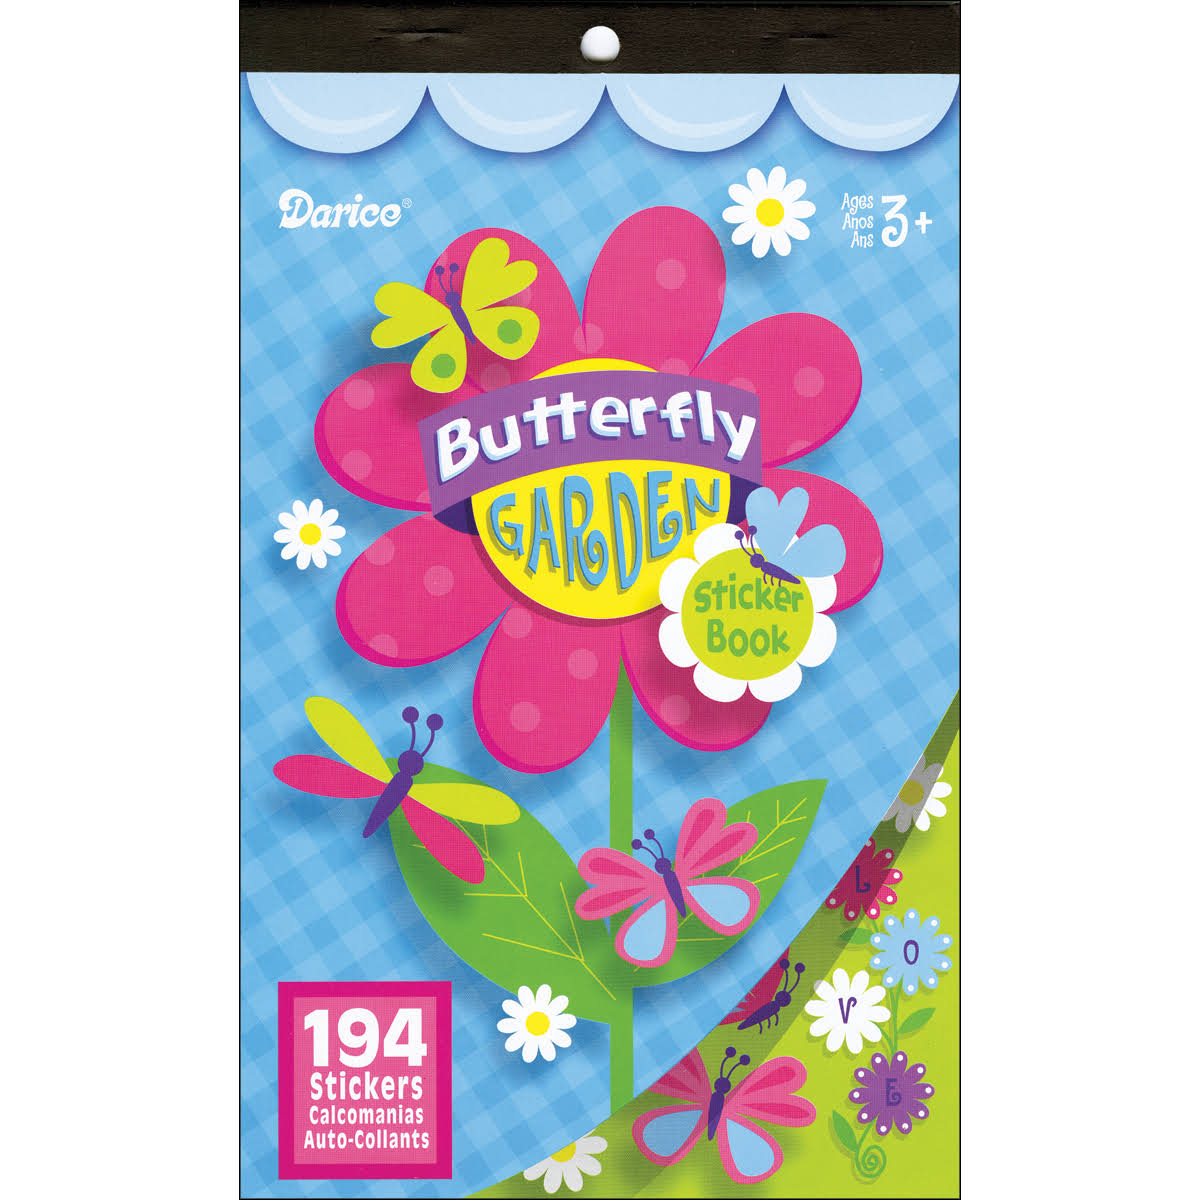 Darice Sticker Book - Butterflies Flowers, 194 Stickers